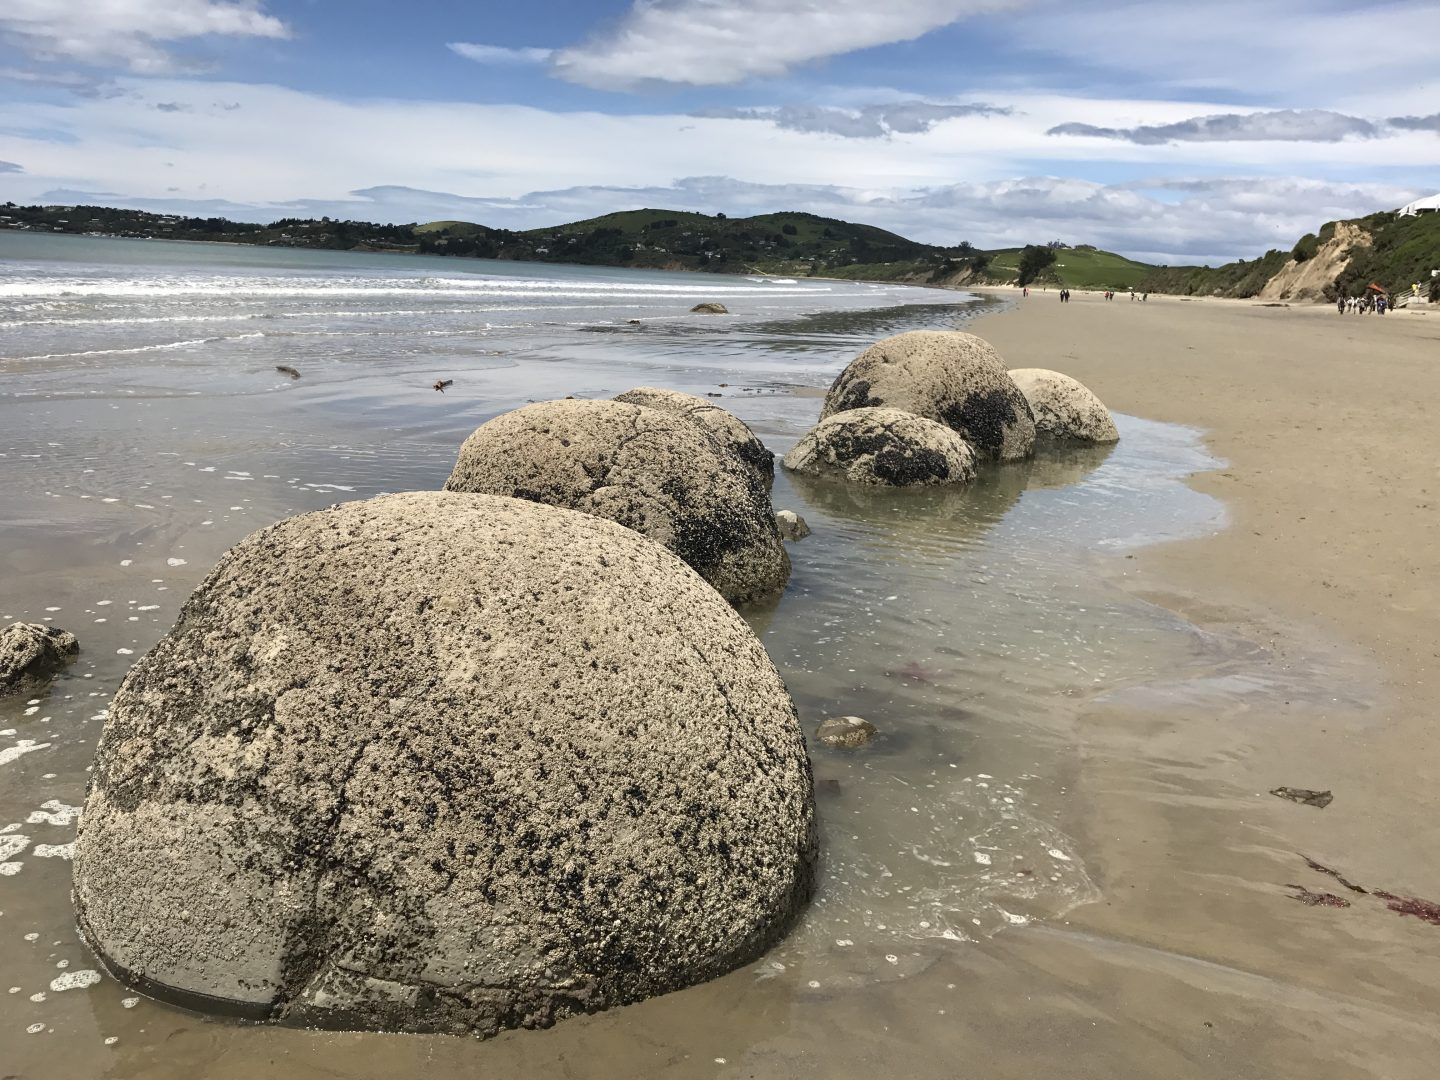 Moeraki Boulders, South Island, New Zealand